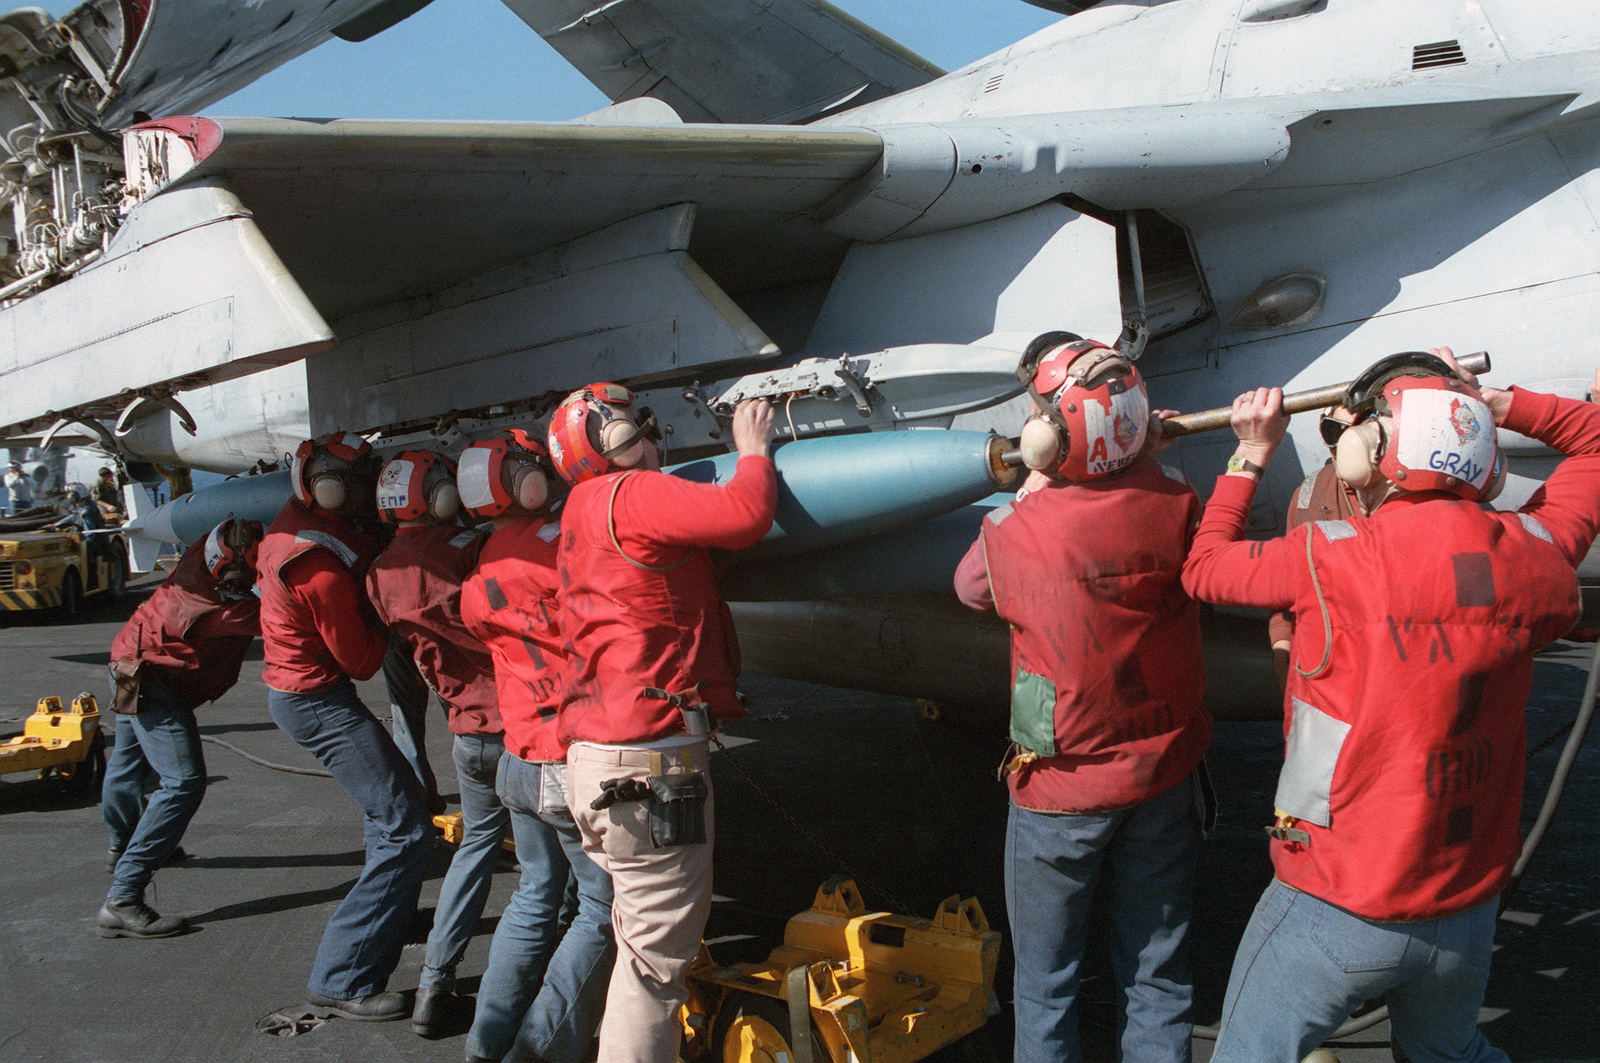 Ordnancemen from Attack Squadron 34 (VA-34) load a Mark 80-series bomb onto an inboard wing pylon of an A-6E Intruder aircraft on board the US Navy (USN) Nuclear-powered Aircraft Carrier USS DWIGHT D. EISENHOWER (CVN 69)